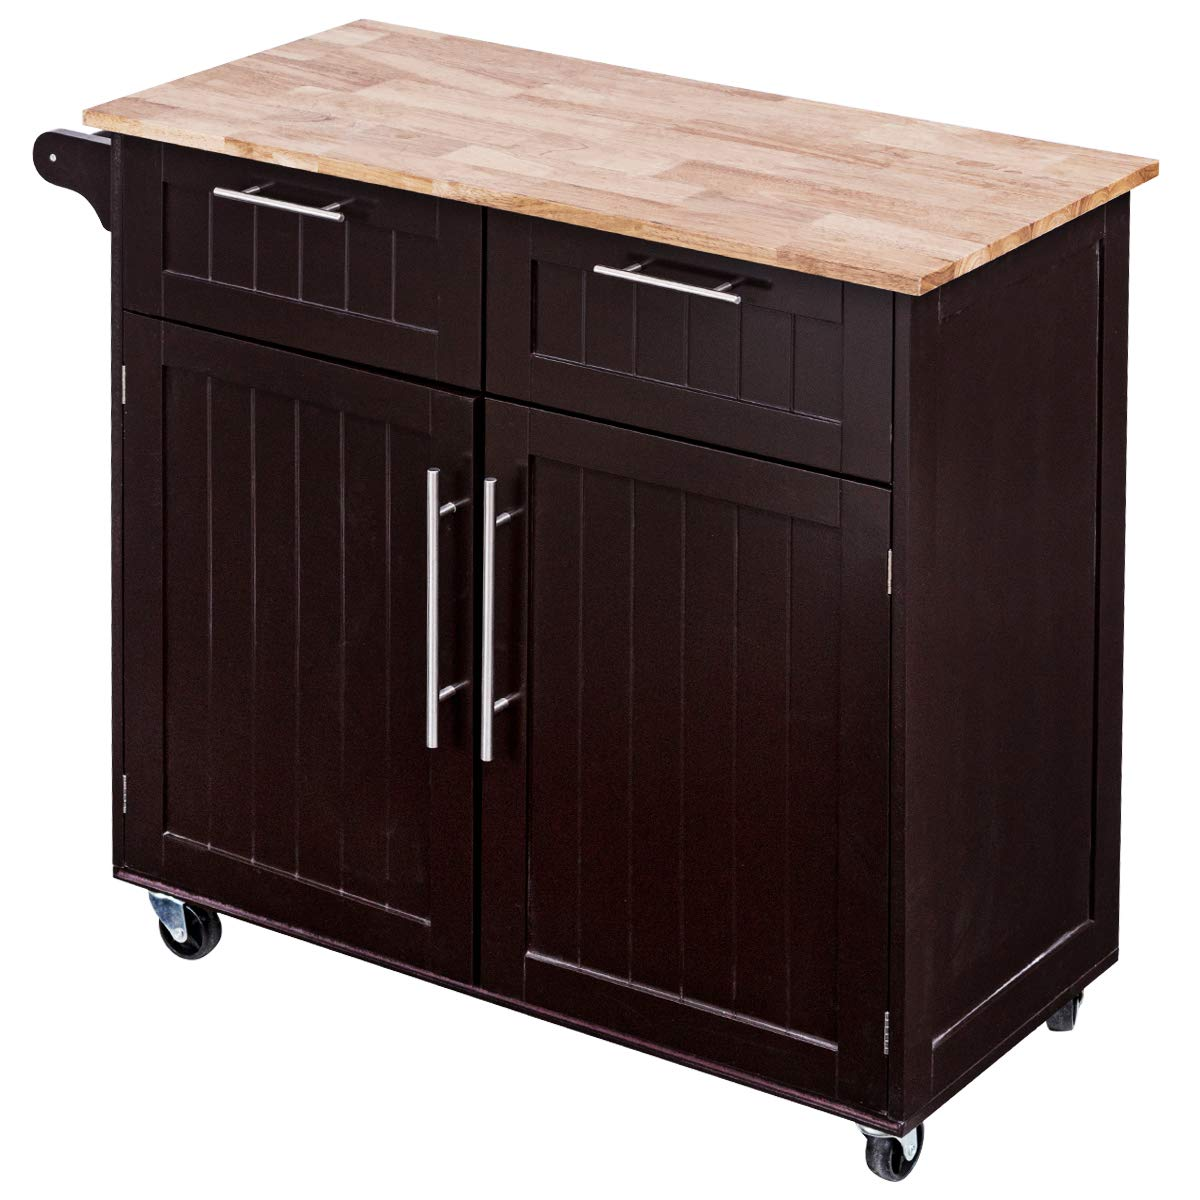 Giantex Kitchen Island Cart Rolling Storage Trolley Cart Home and Restaurant Serving Utility Cart with Drawers,Cabinet, Towel Rack and Wood Top by Giantex (Image #7)